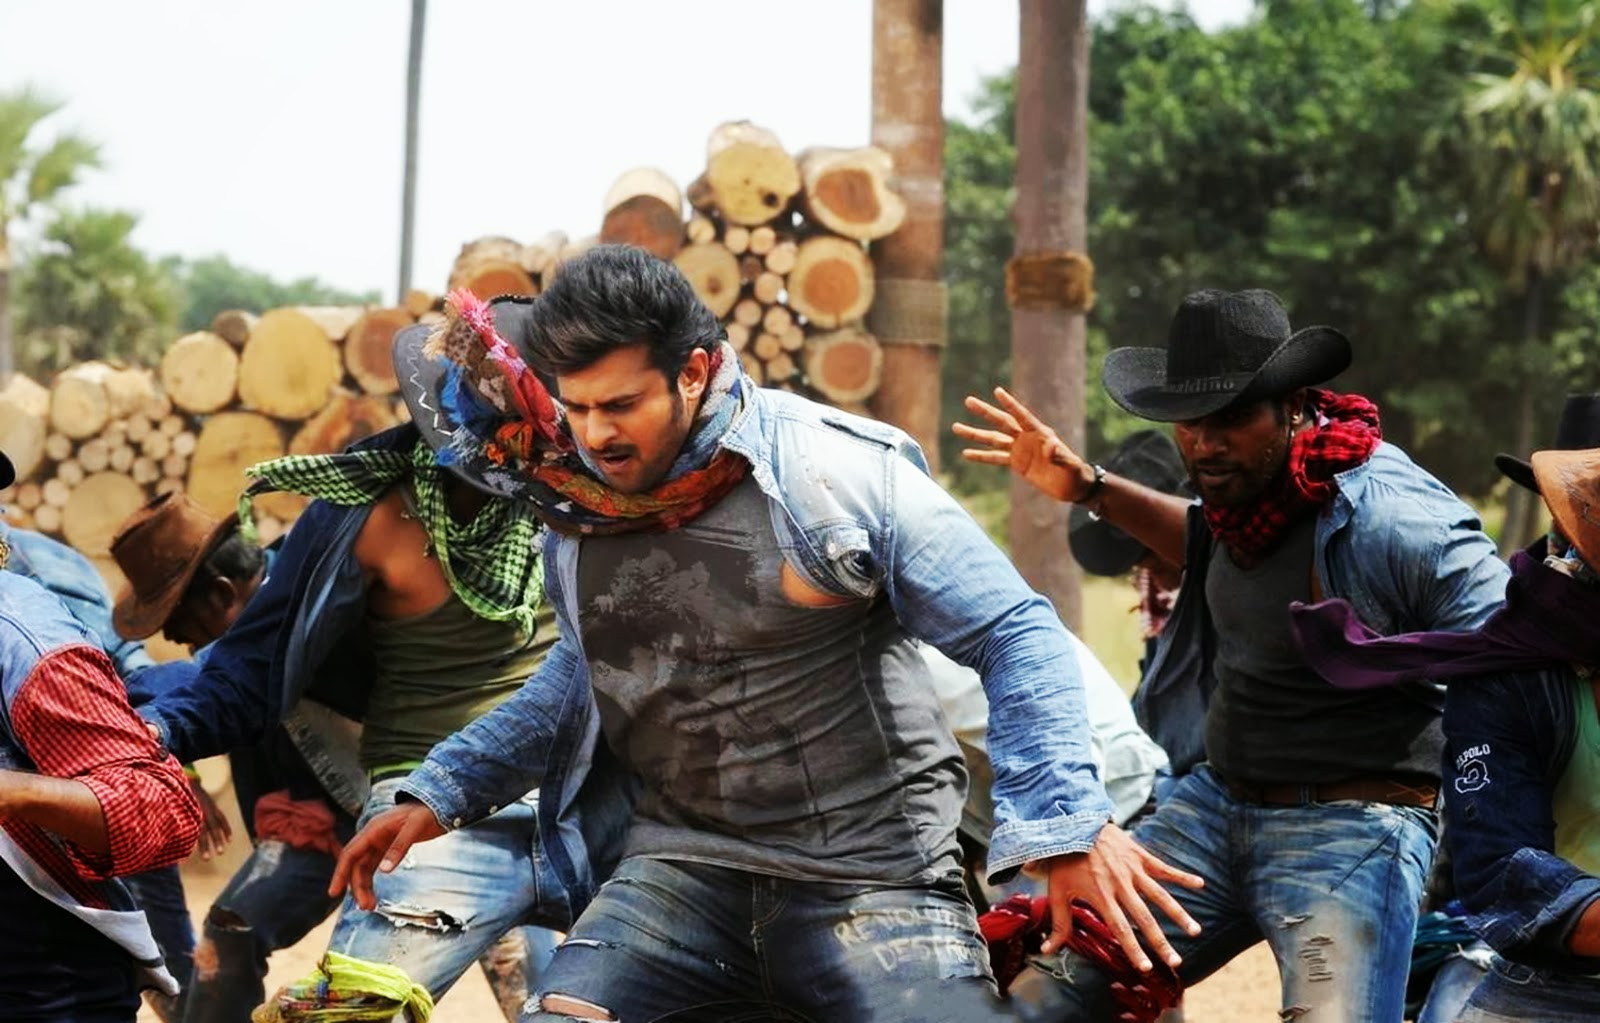 Prabhas Fans Forever: Mirchi Hd Stills Without Watermark-Set 7